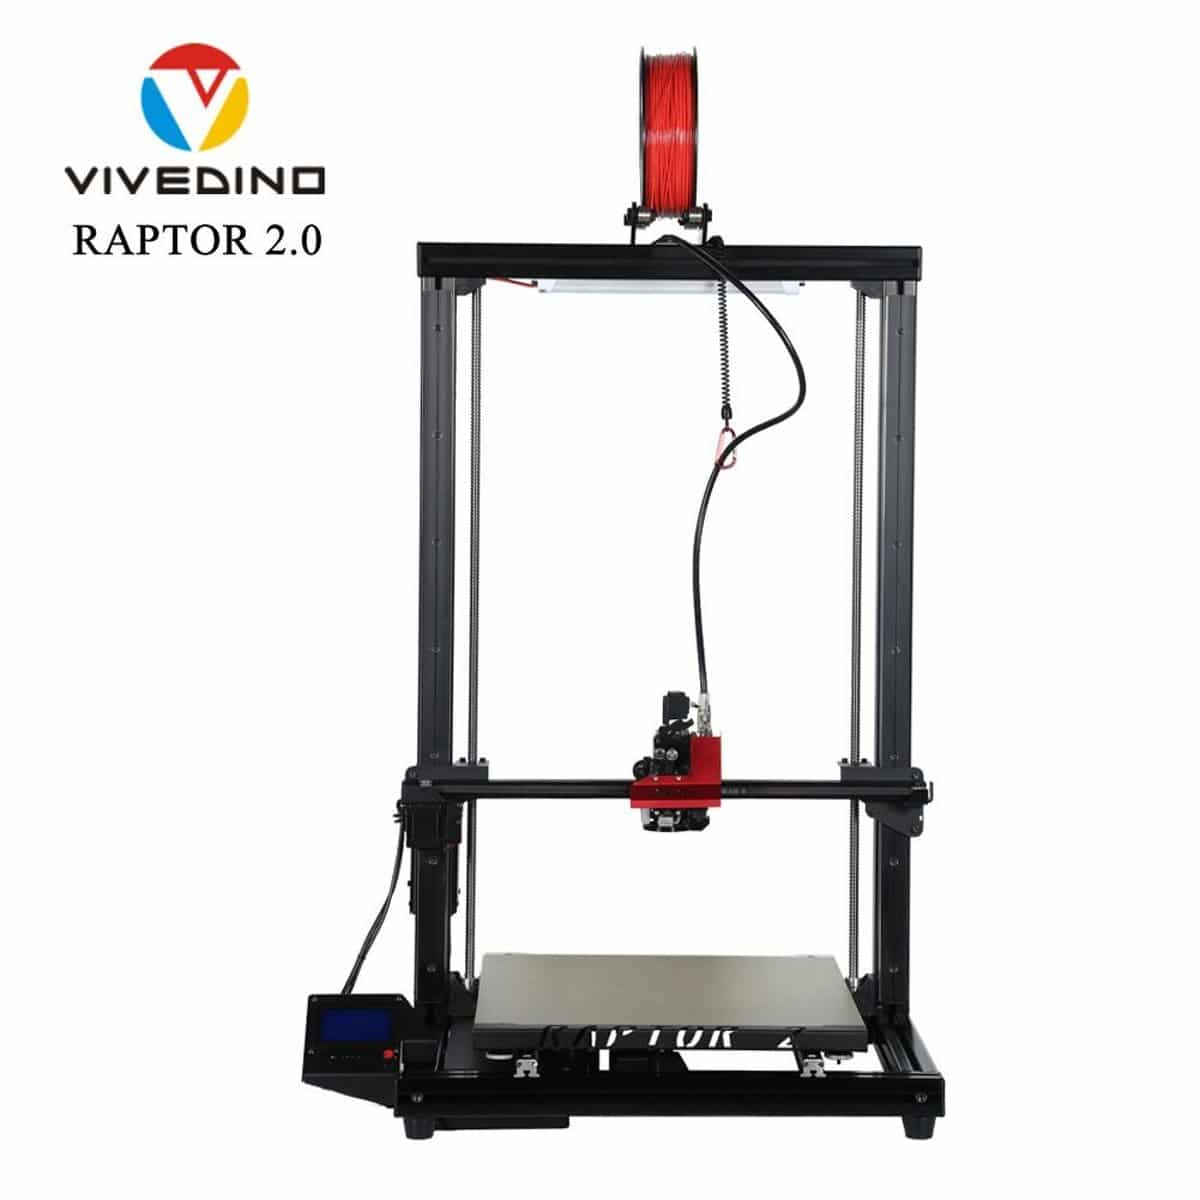 Image of Vivedino Formbot Raptor 2.0 - 400x400x700mm